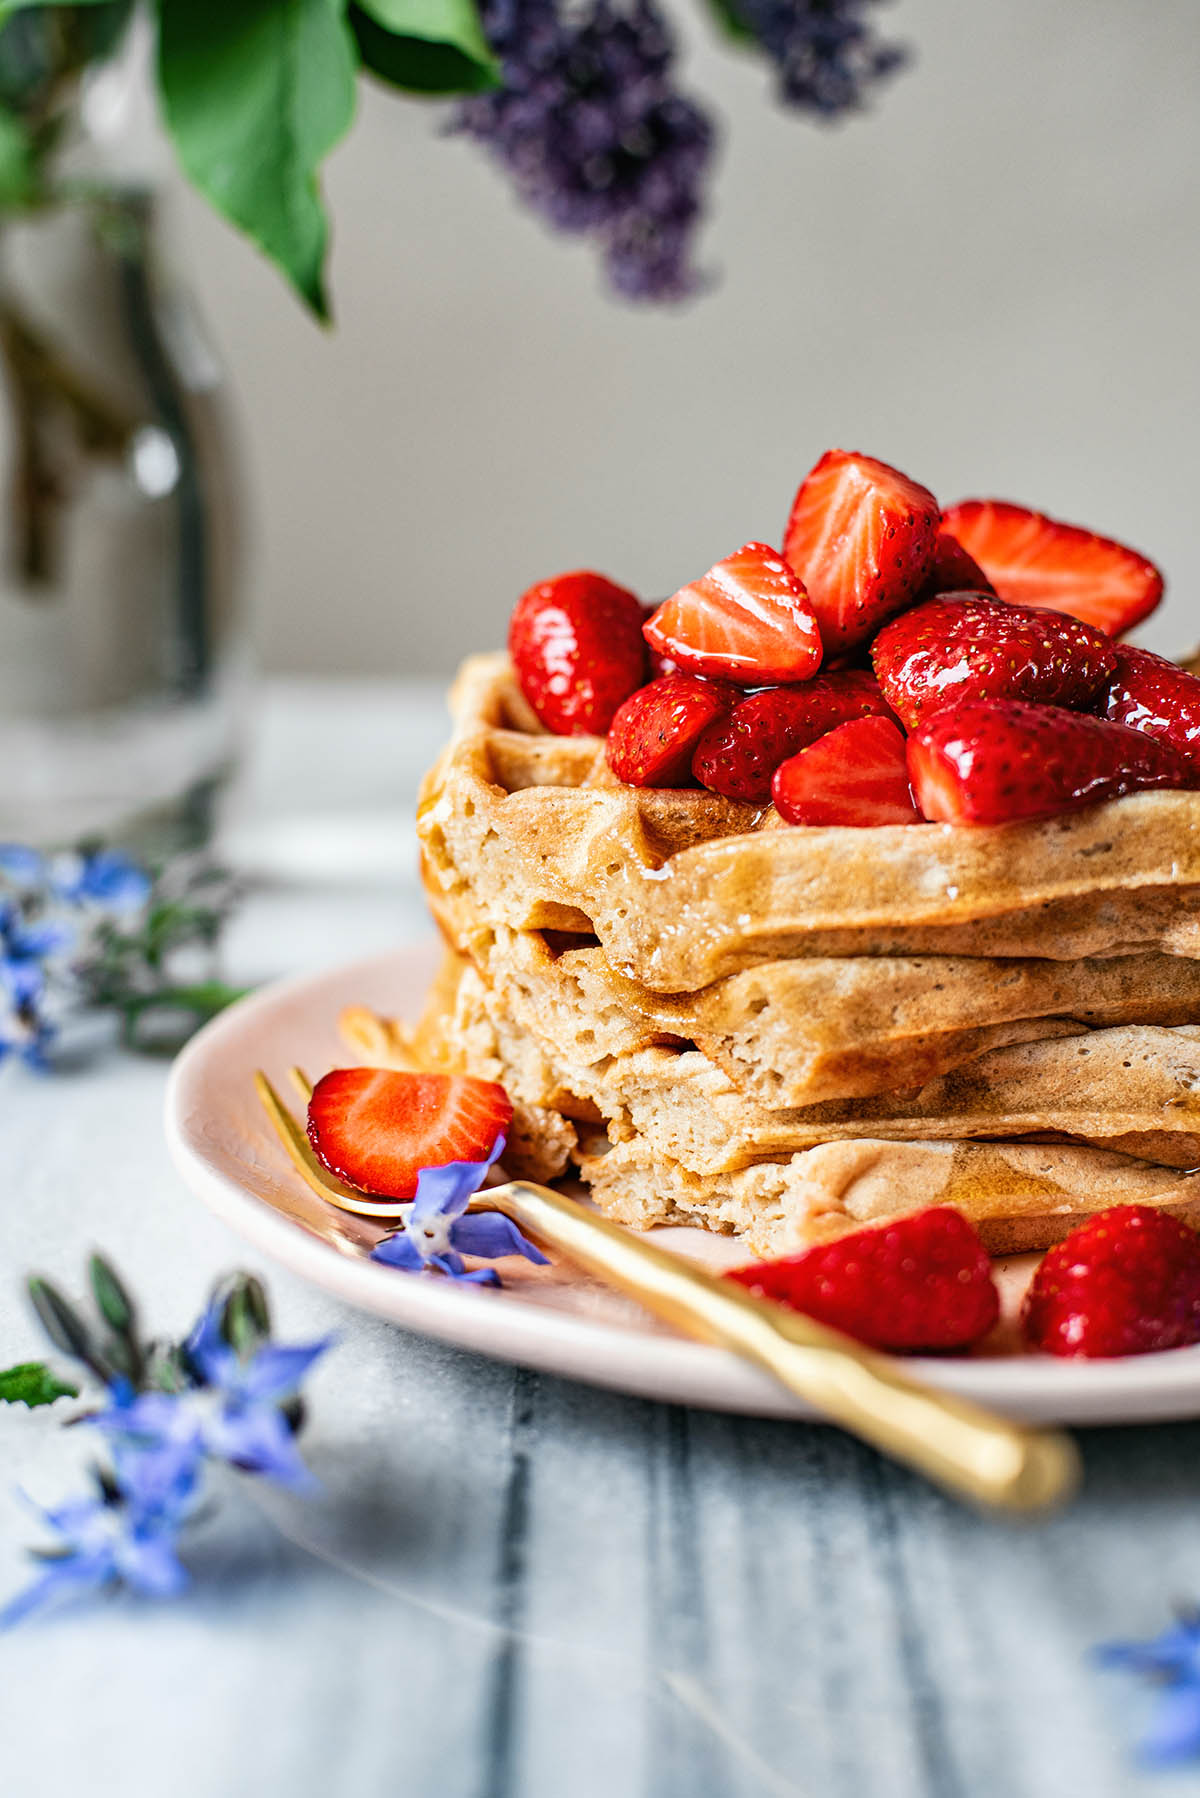 Stack of square waffles topped with strawberries, cut to show interior texture.